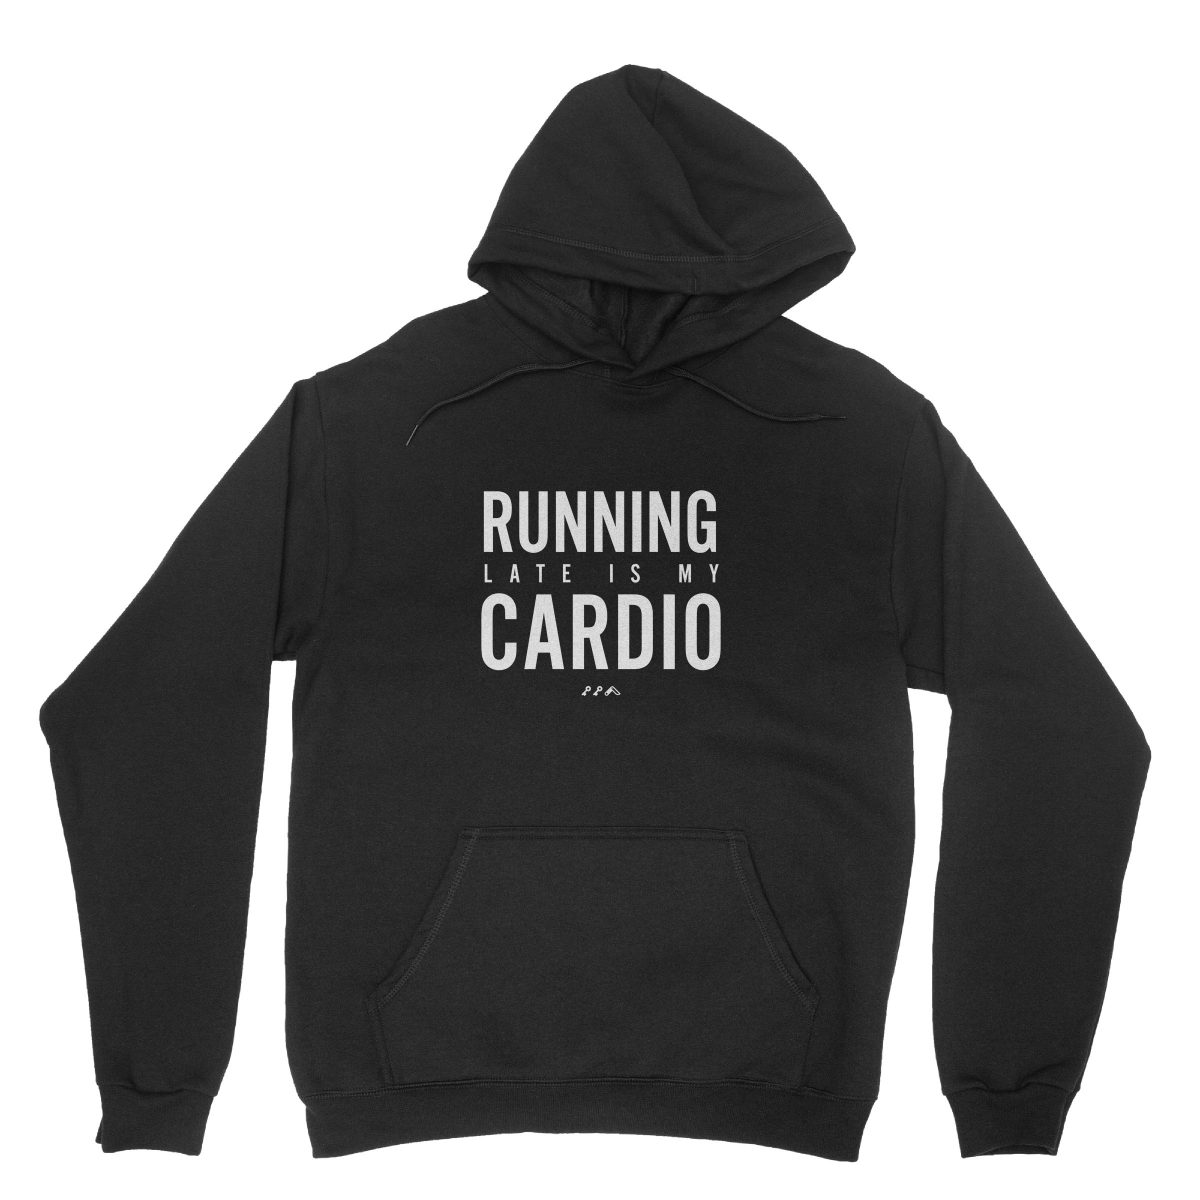 RUNNING LATE IS MY CARDIO funny workout hoodies in black by kikicutt